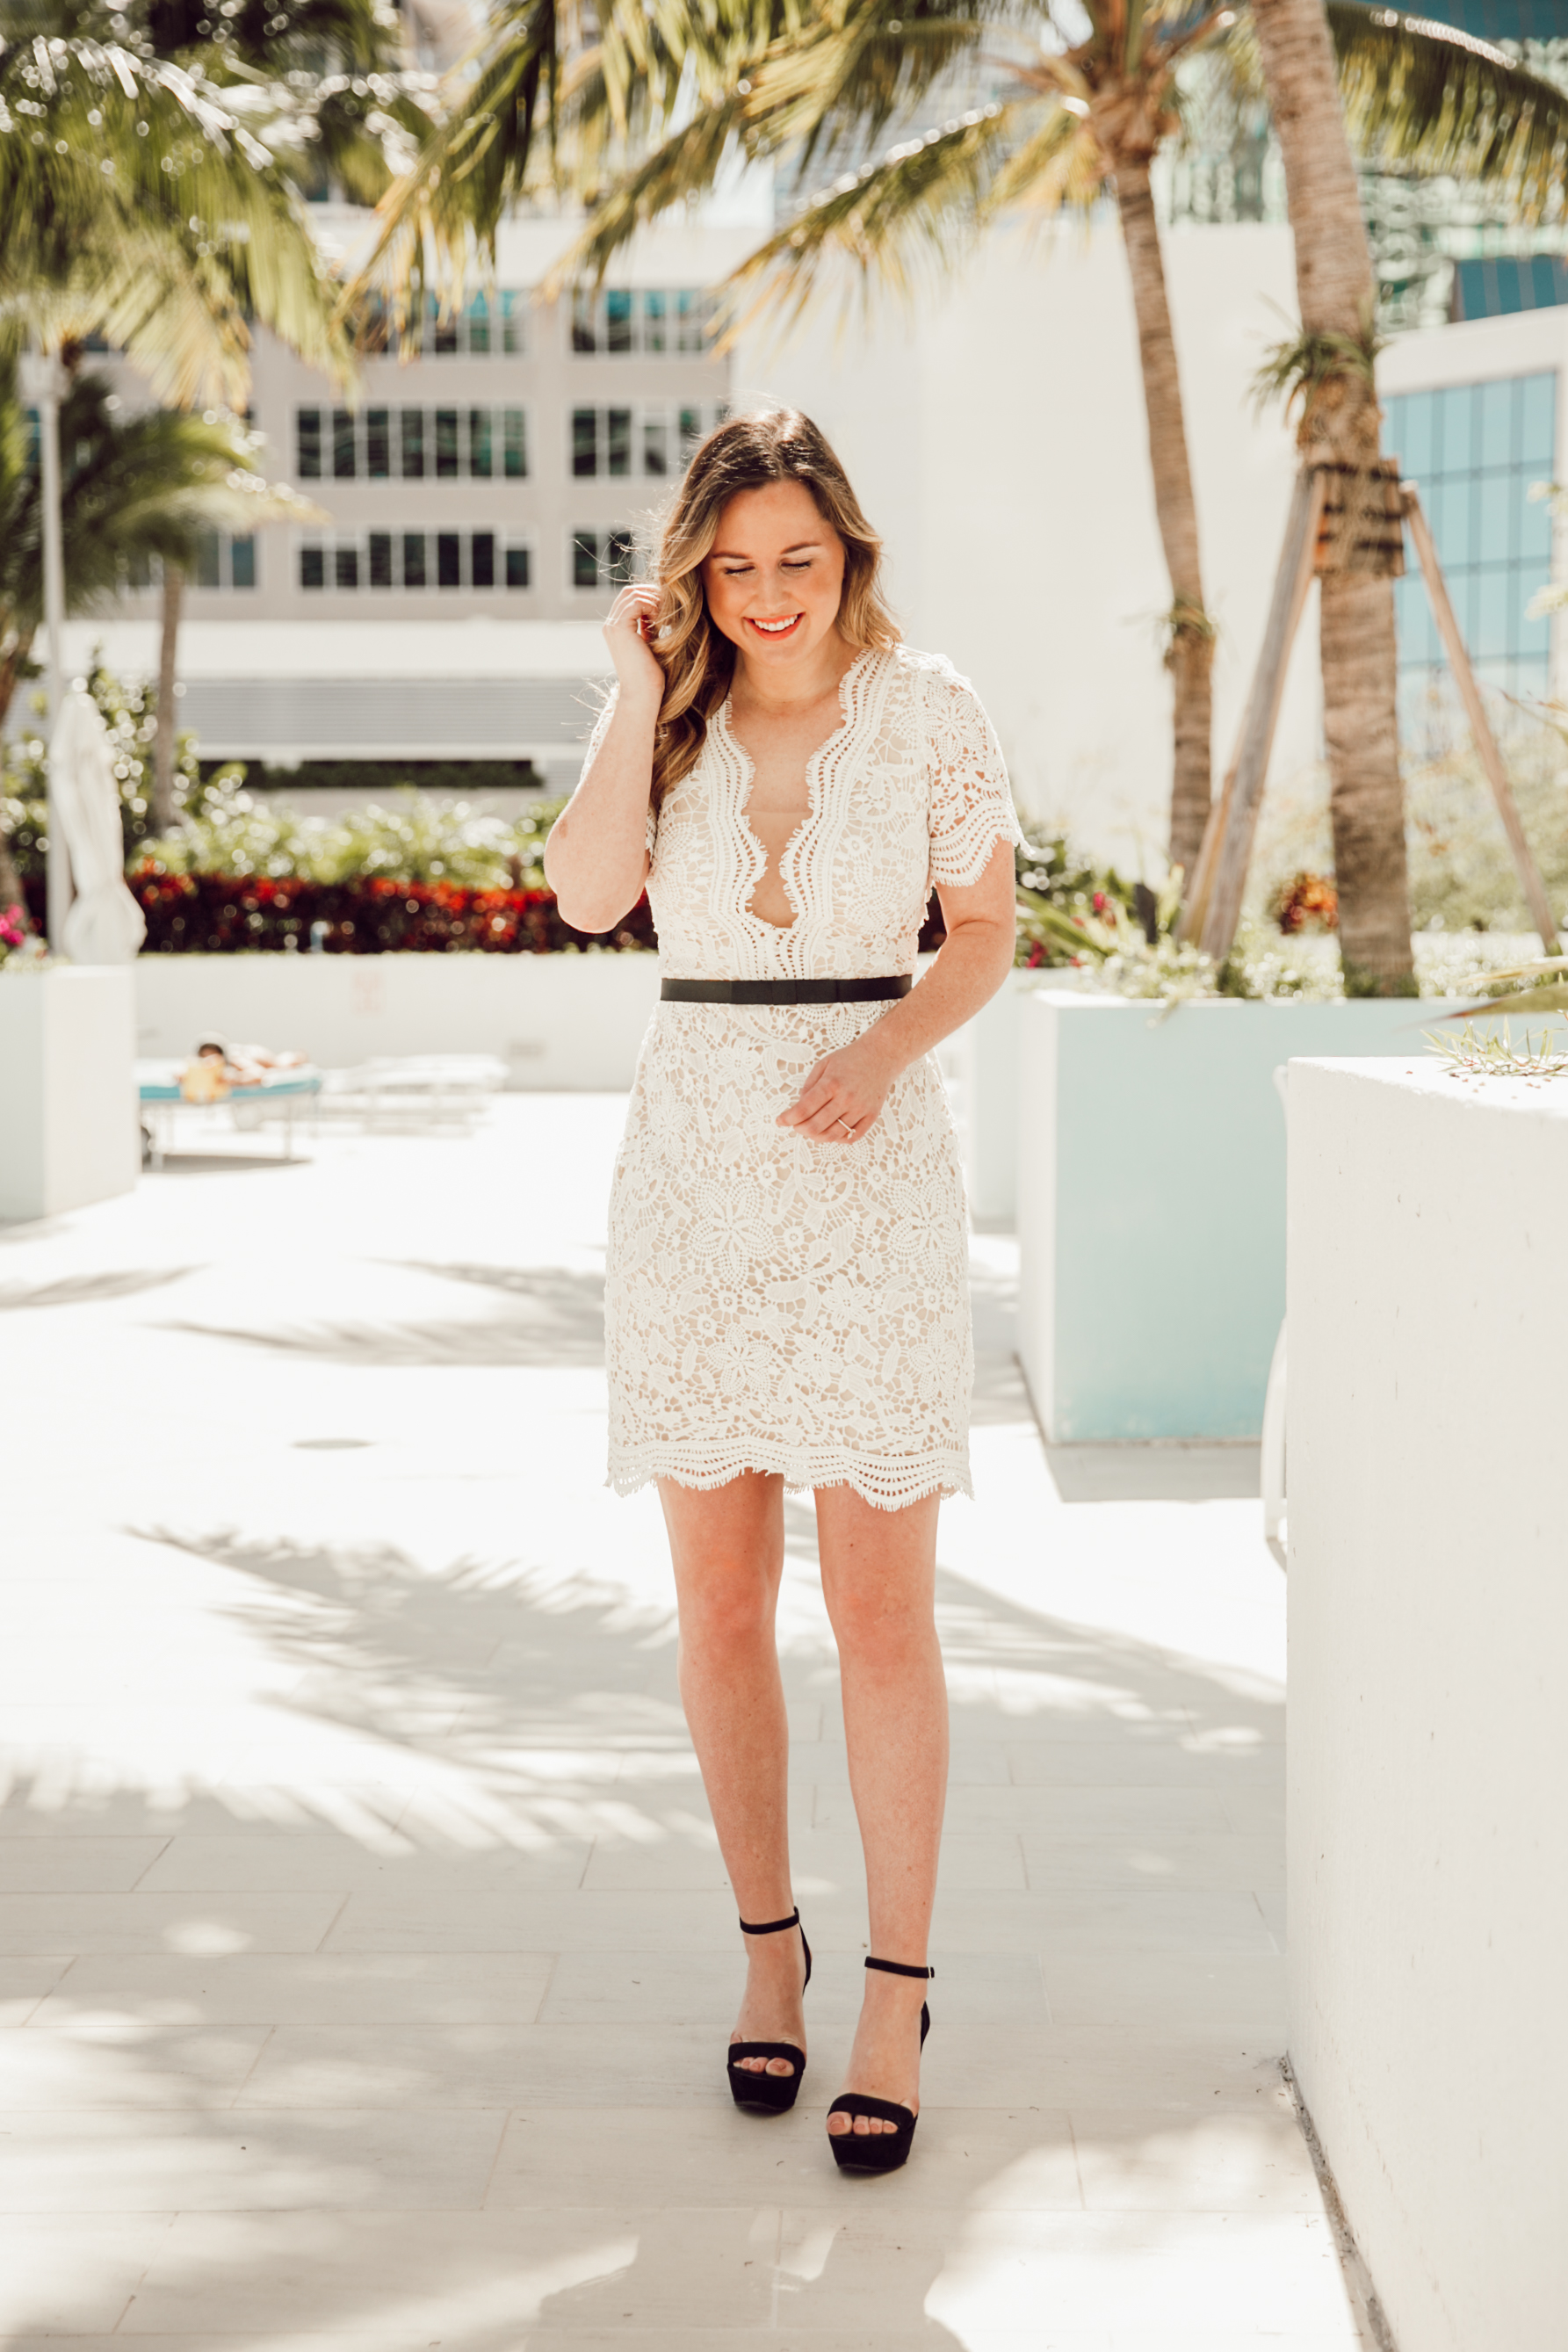 cff7b7f6e3cb With so many upcoming showers, parties, and wedding events I have been on  the hunt for alllll the little white dresses. This lace midi is my favorite  for a ...